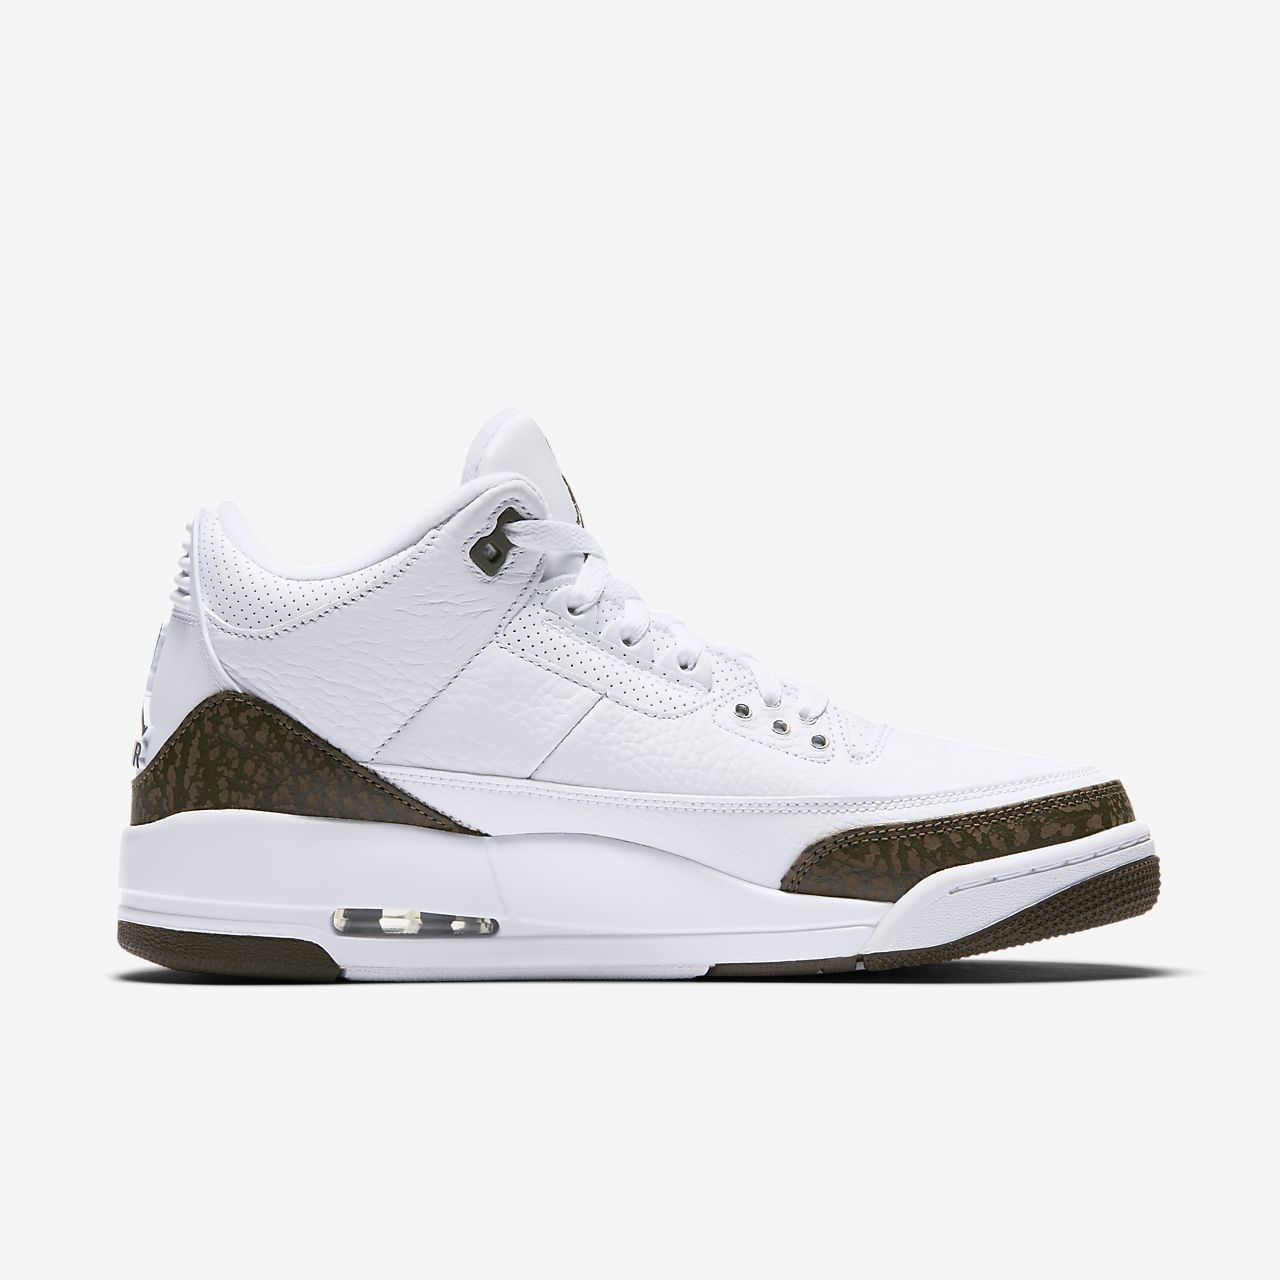 b6495c72bc5f Air Jordan 3 Retro Men s Shoe. Nike.com